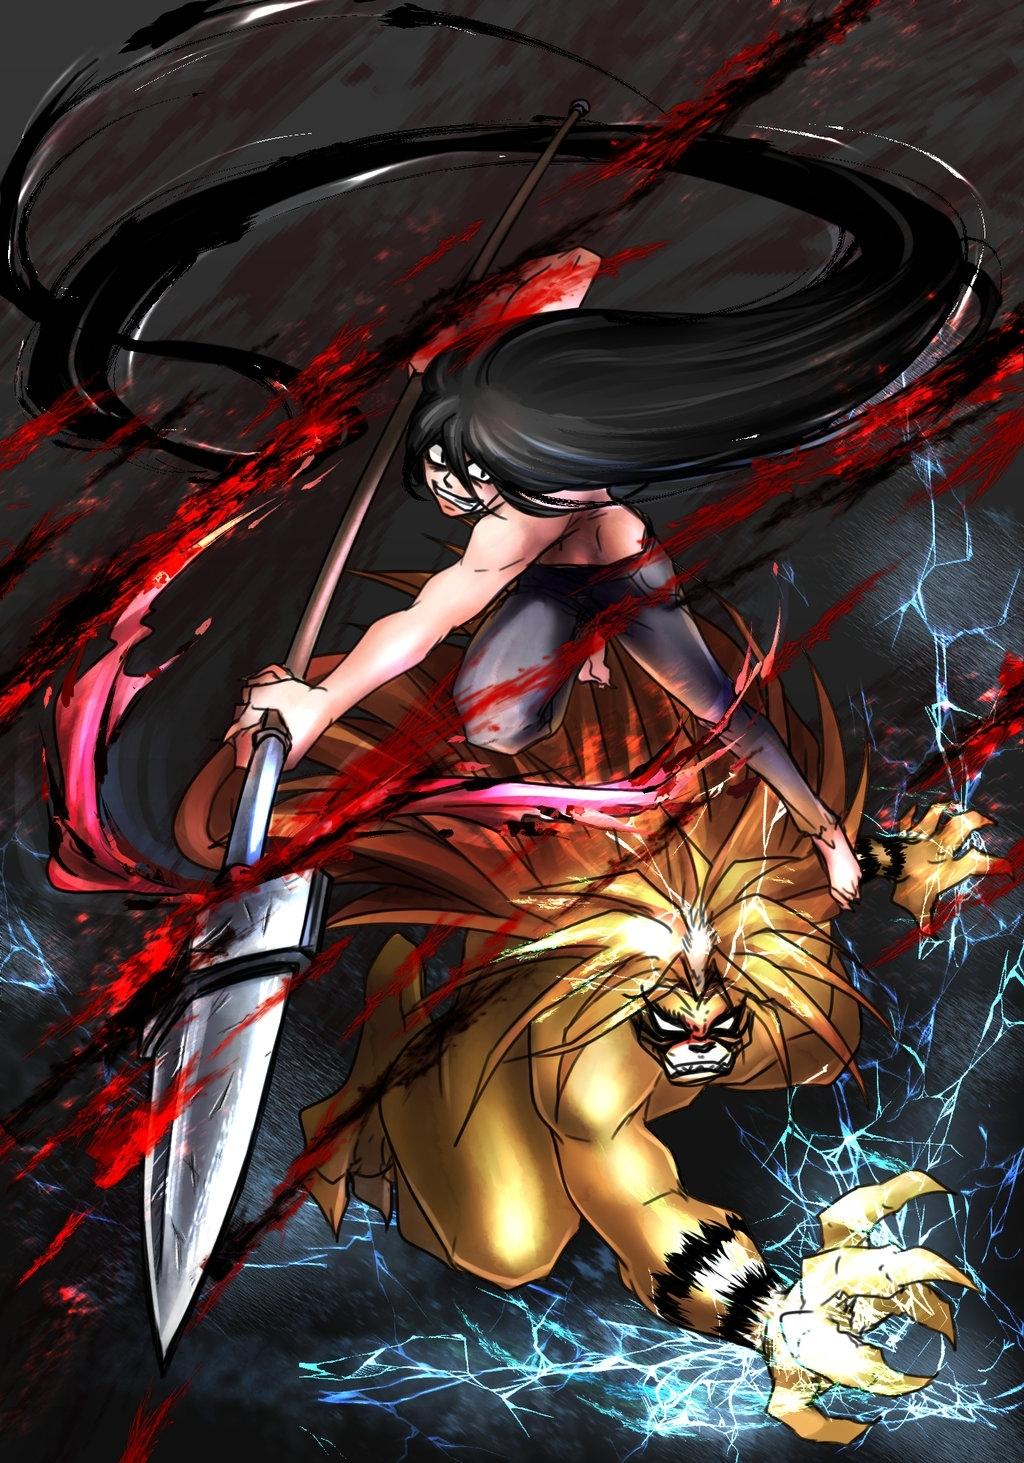 ushio & tora hd wallpapers | wallpapersin4k